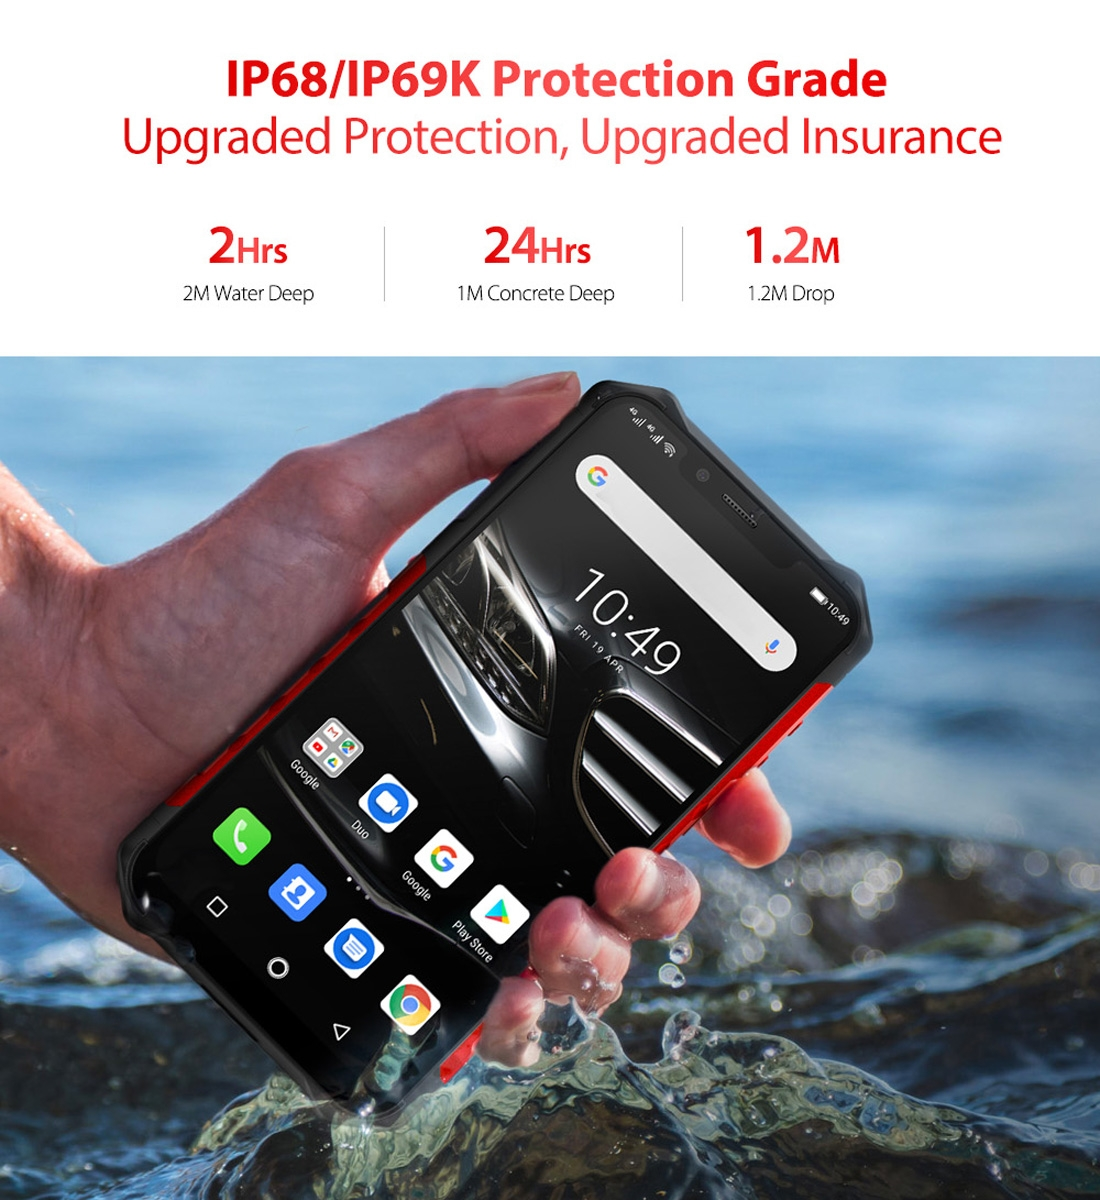 Ulefone Armor 6E Rugged Phone, Dual 4G & VoLTE, 4GB+64GB, IP68/IP69K Waterproof Dustproof Shockproof, Face ID & Fingerprint Identification, 5000mAh Battery, 6.2 inch Android 9.0 Helio P70 (MKT6771T) Octa-core 64-bit up to 2.1GHz, Network: 4G, OTG, NFC, Wireless Charging (Red)